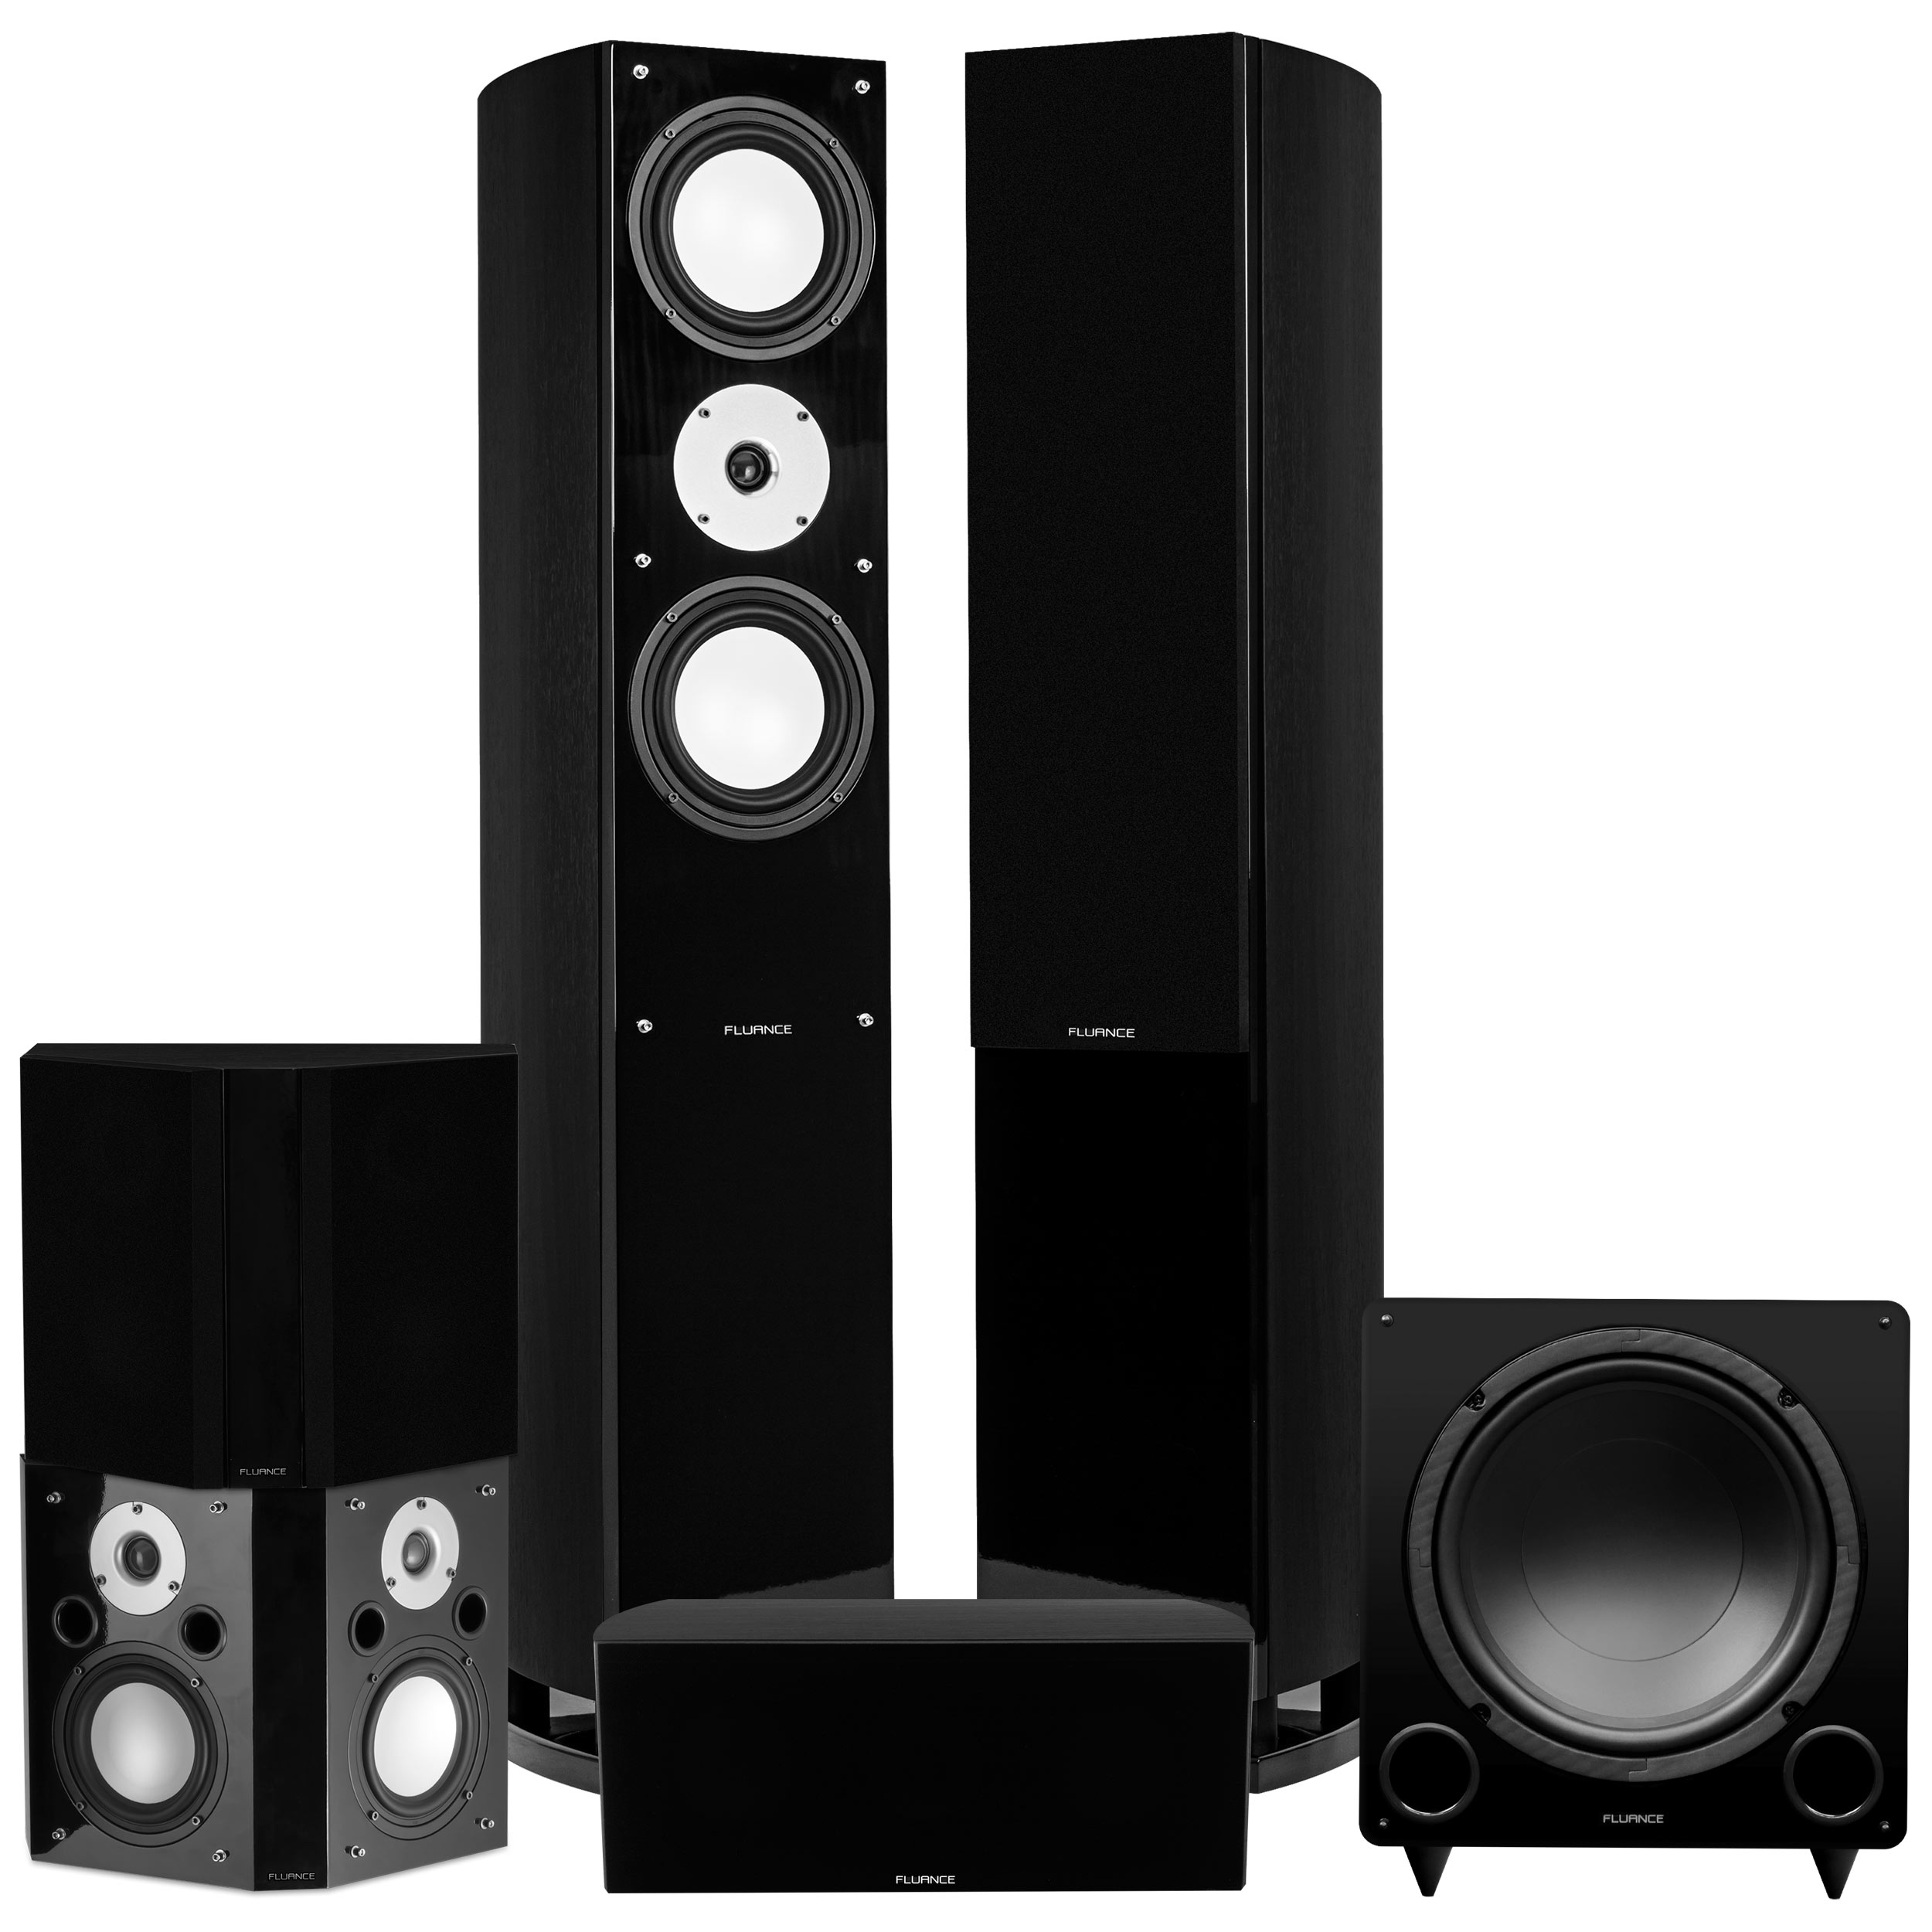 Fluance Reference Series Surround Sound Home Theater 5.1 Channel Speaker System including Three-way Floorstanding Towers, Center Channel, Bipolar Speakers and DB12 Subwoofer - Black Ash (XL51BB)